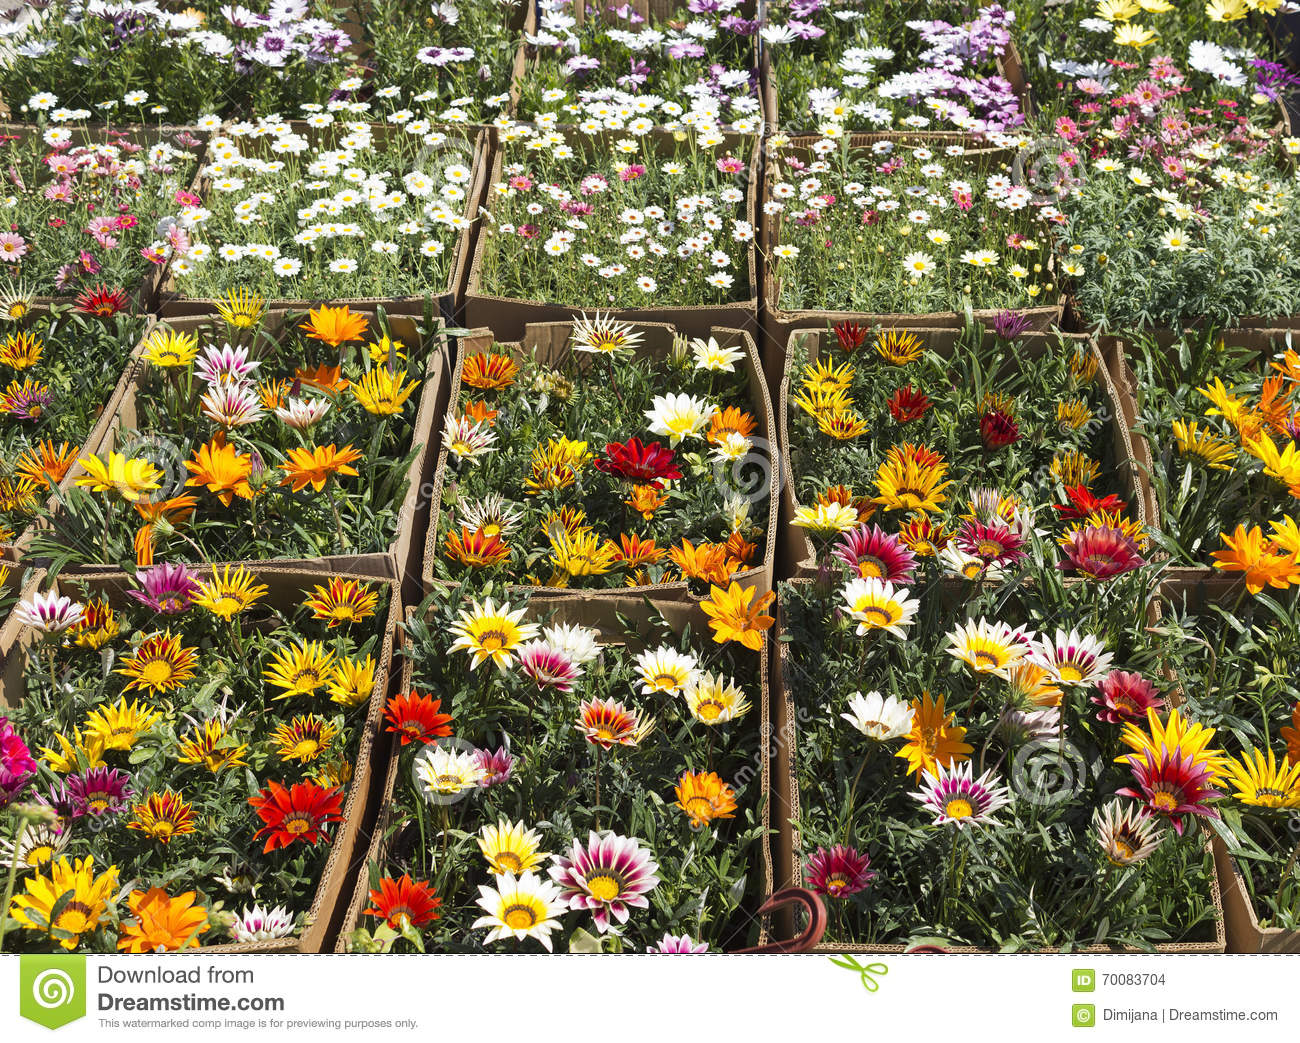 Flowers For Sale - Flower Market Stock Photo - Image of marketing ...